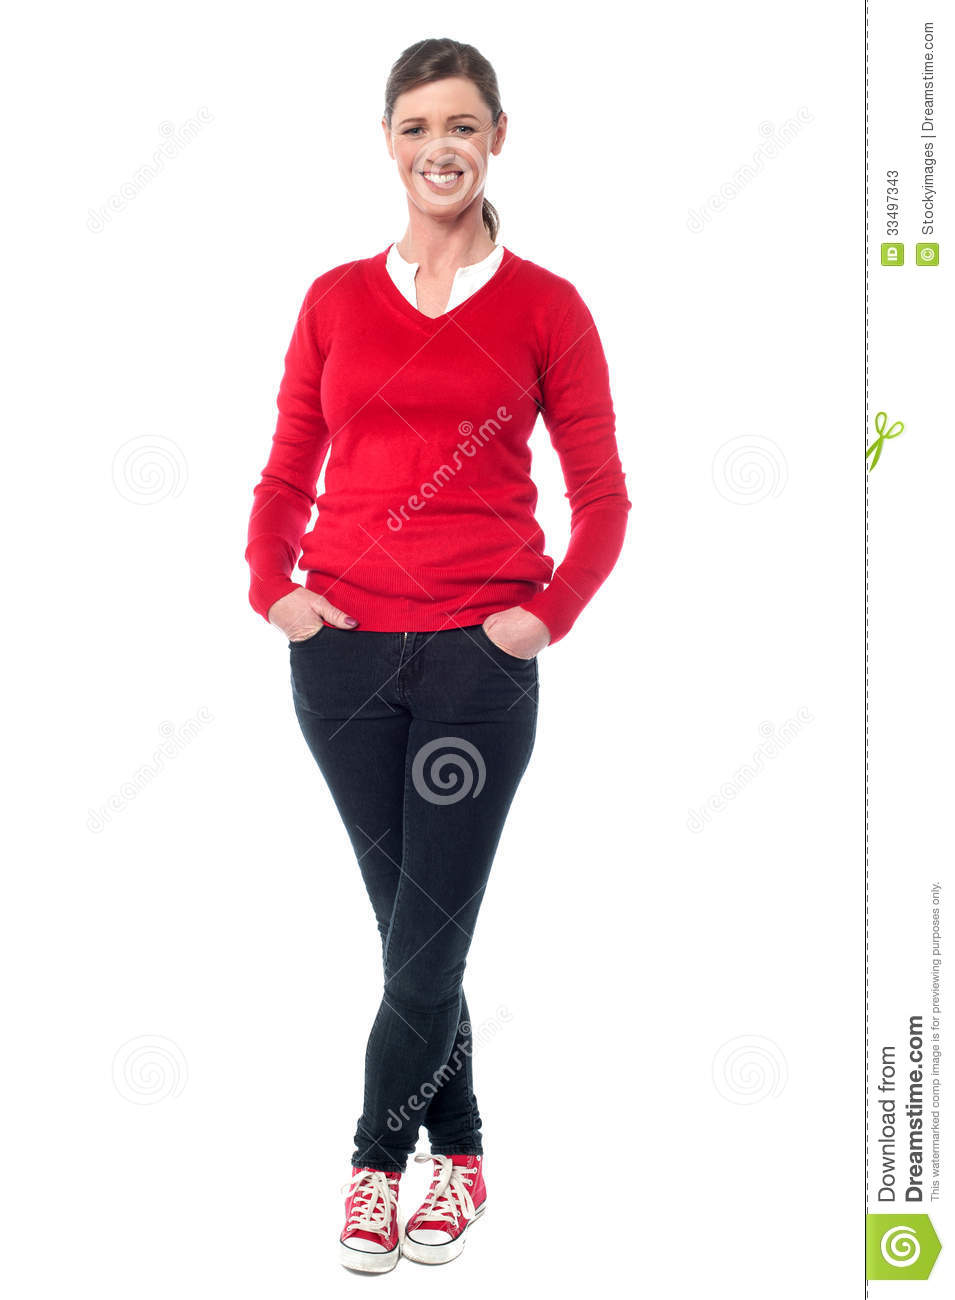 By following fashion that is suitable for your age you can look extremely stylish and chic for your age. middle aged women